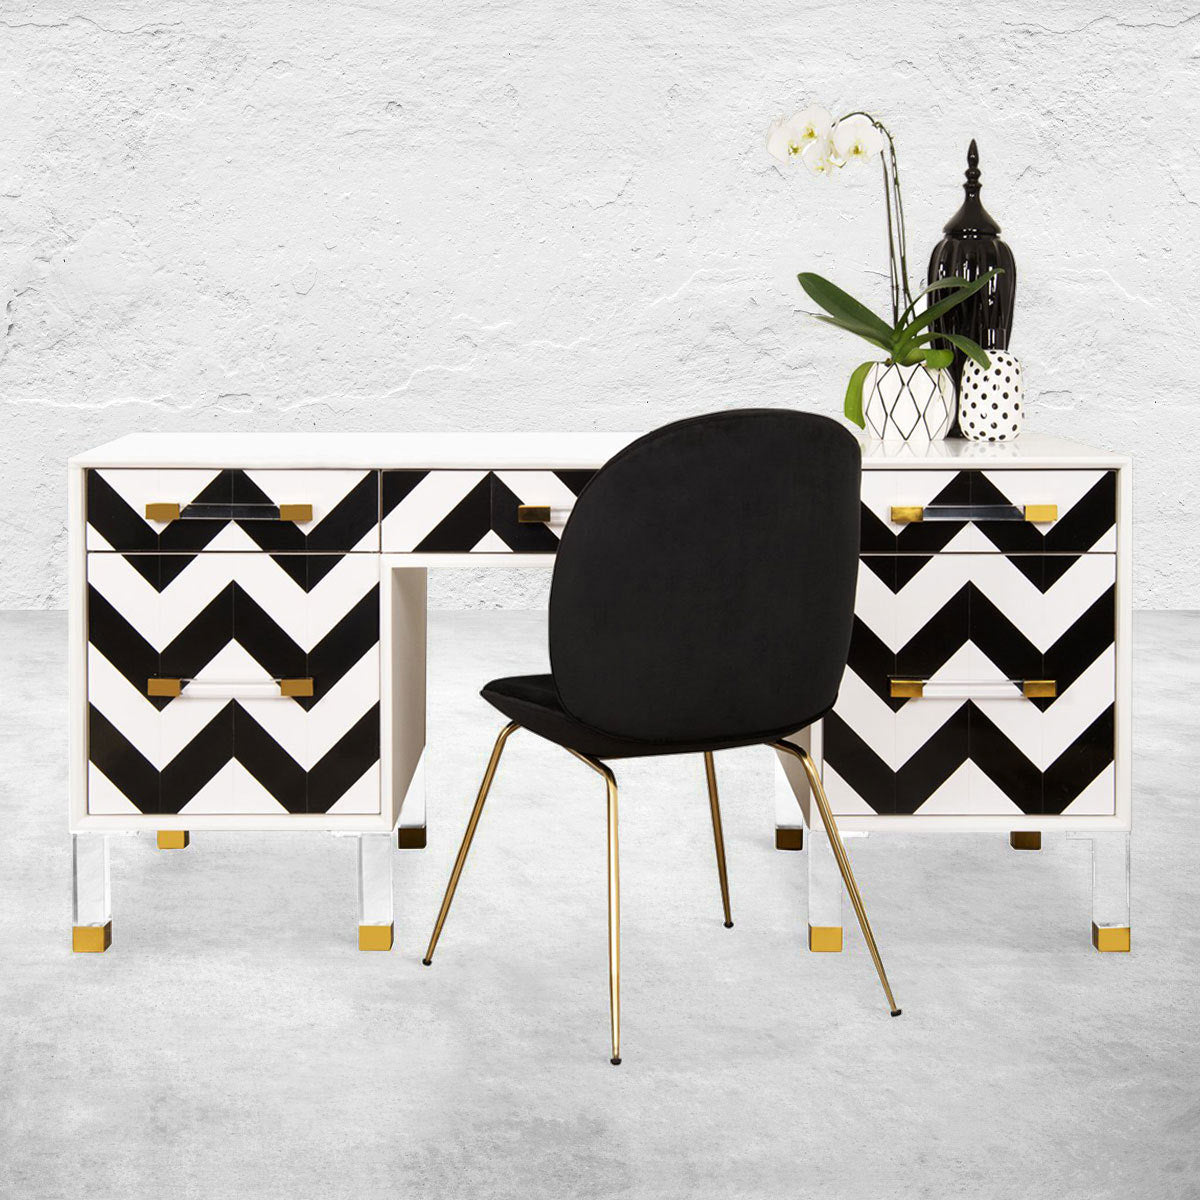 Simple black chair with metal legs in front of a six-drawer desk with a white frame, black-and-white chevron front and combination Lucite and brass legs.